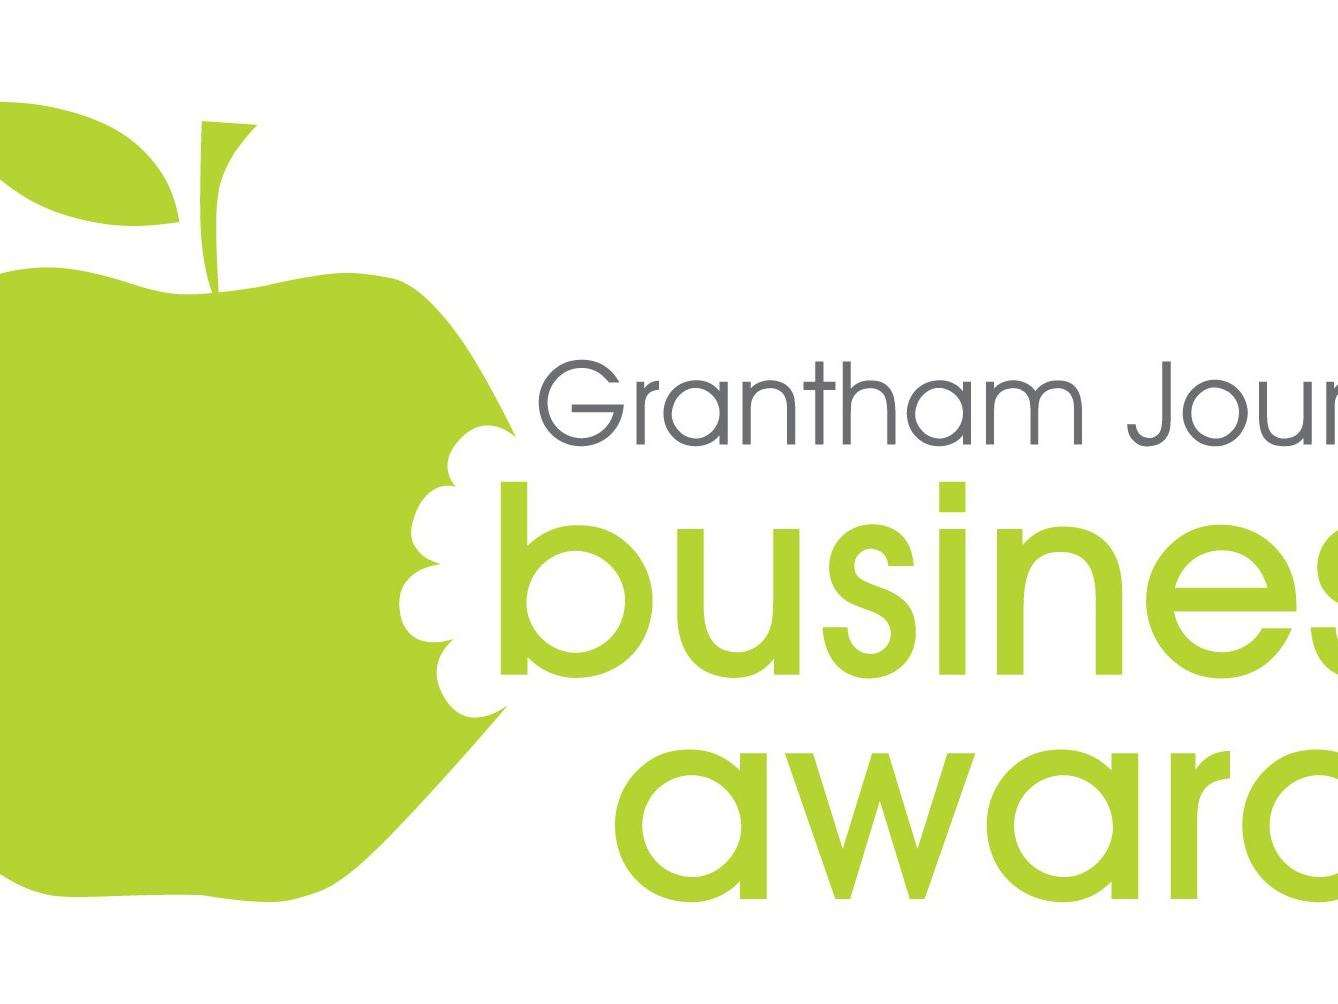 Grantham Journal Business Awards